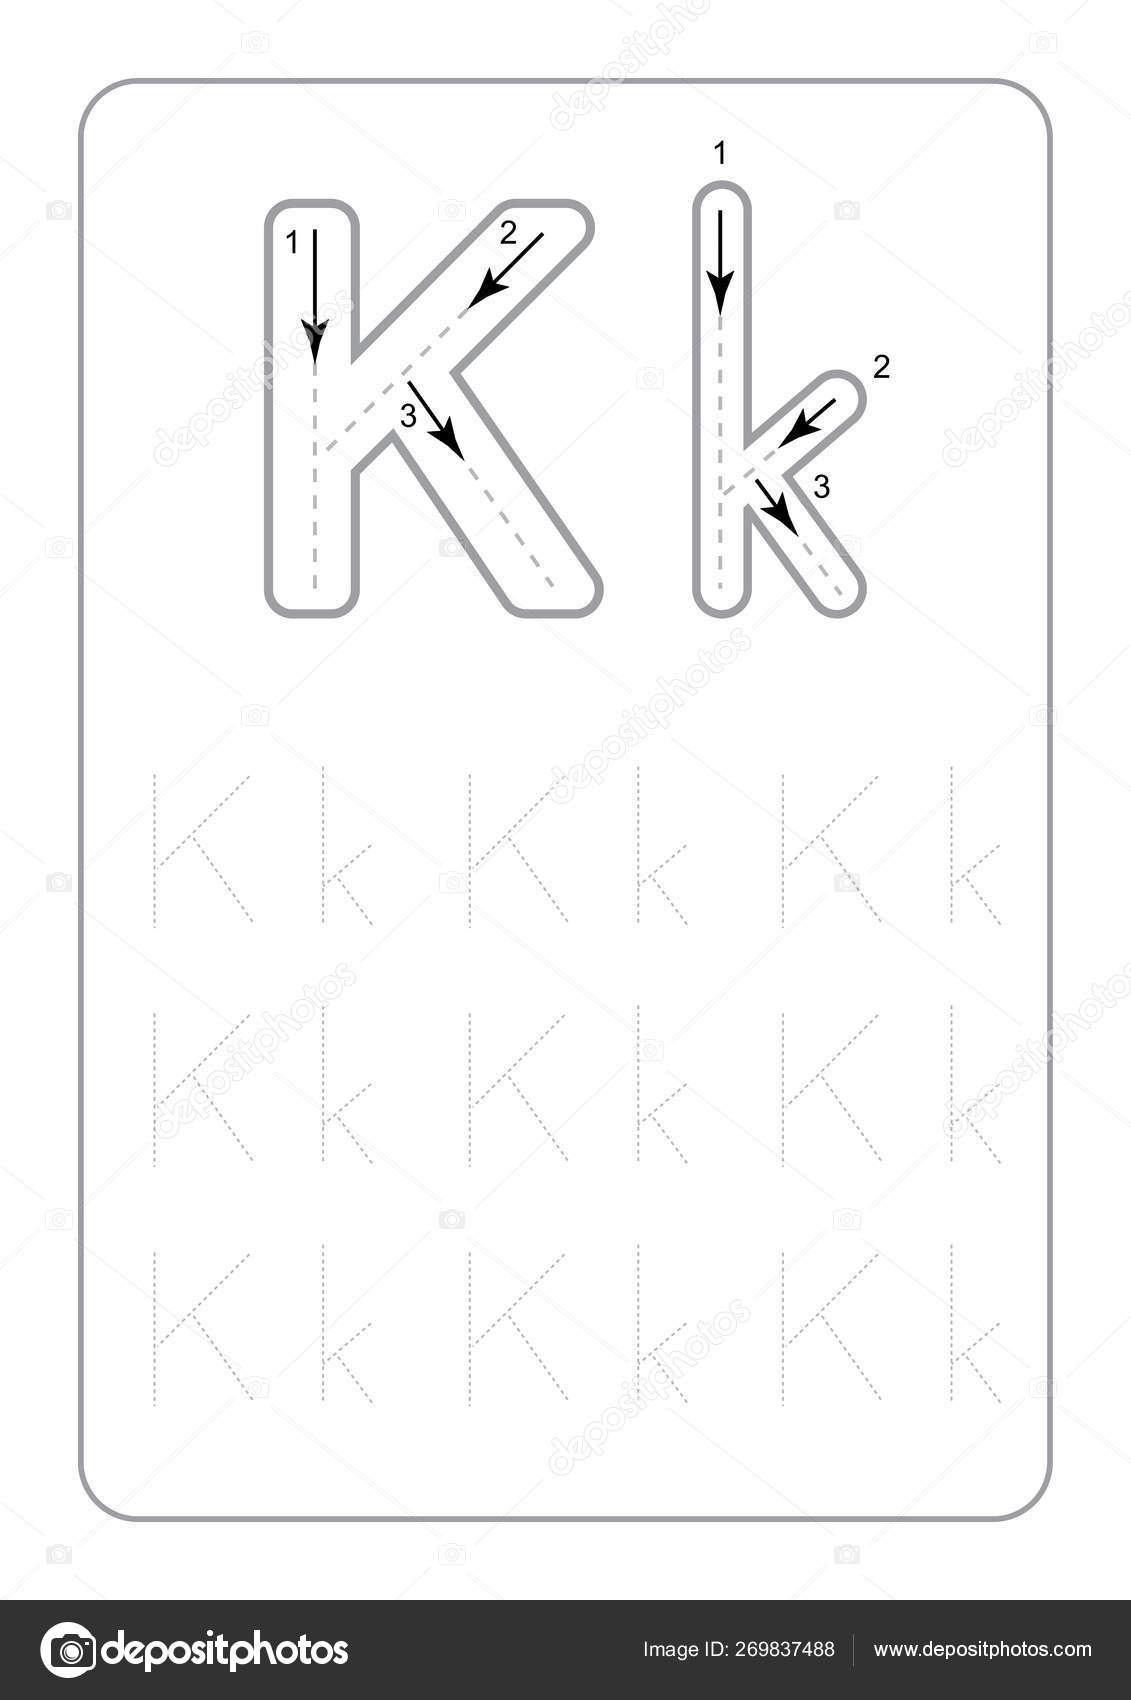 Kindergarten Tracing Letters Worksheets Monochrome Tracing throughout Kindergarten Tracing Letters